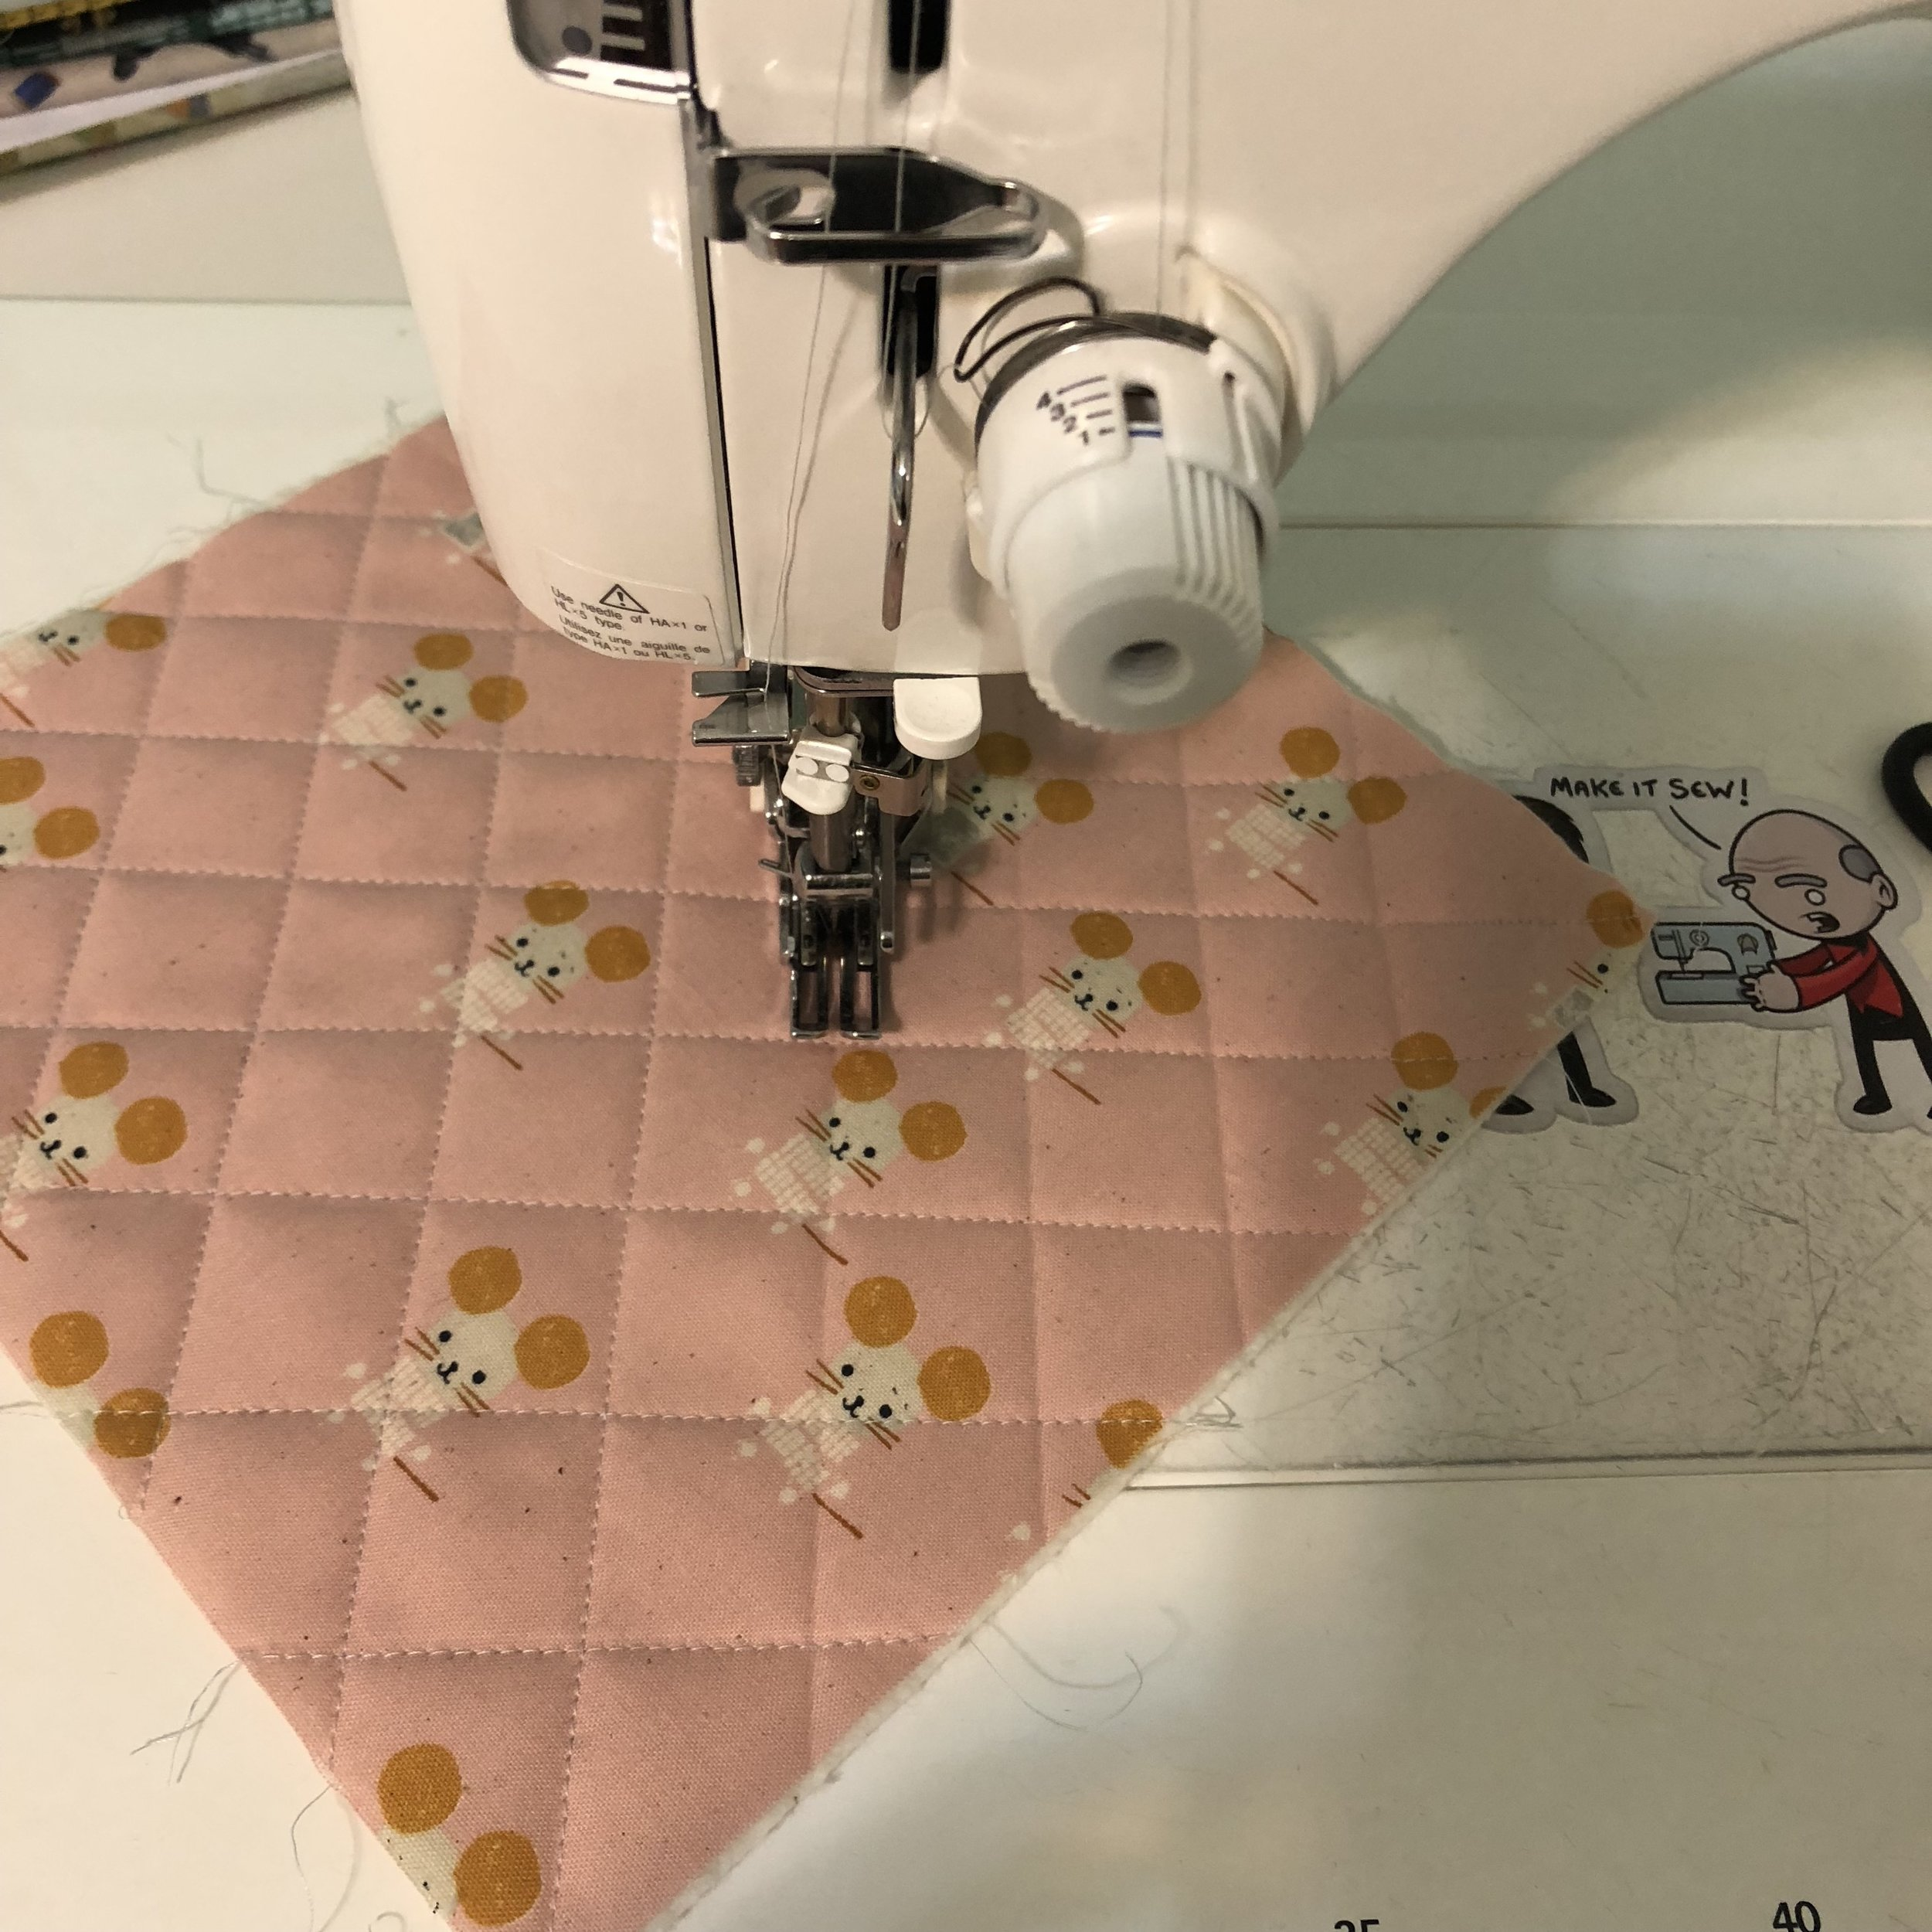 Crosshatch quilting on my domestic Juki